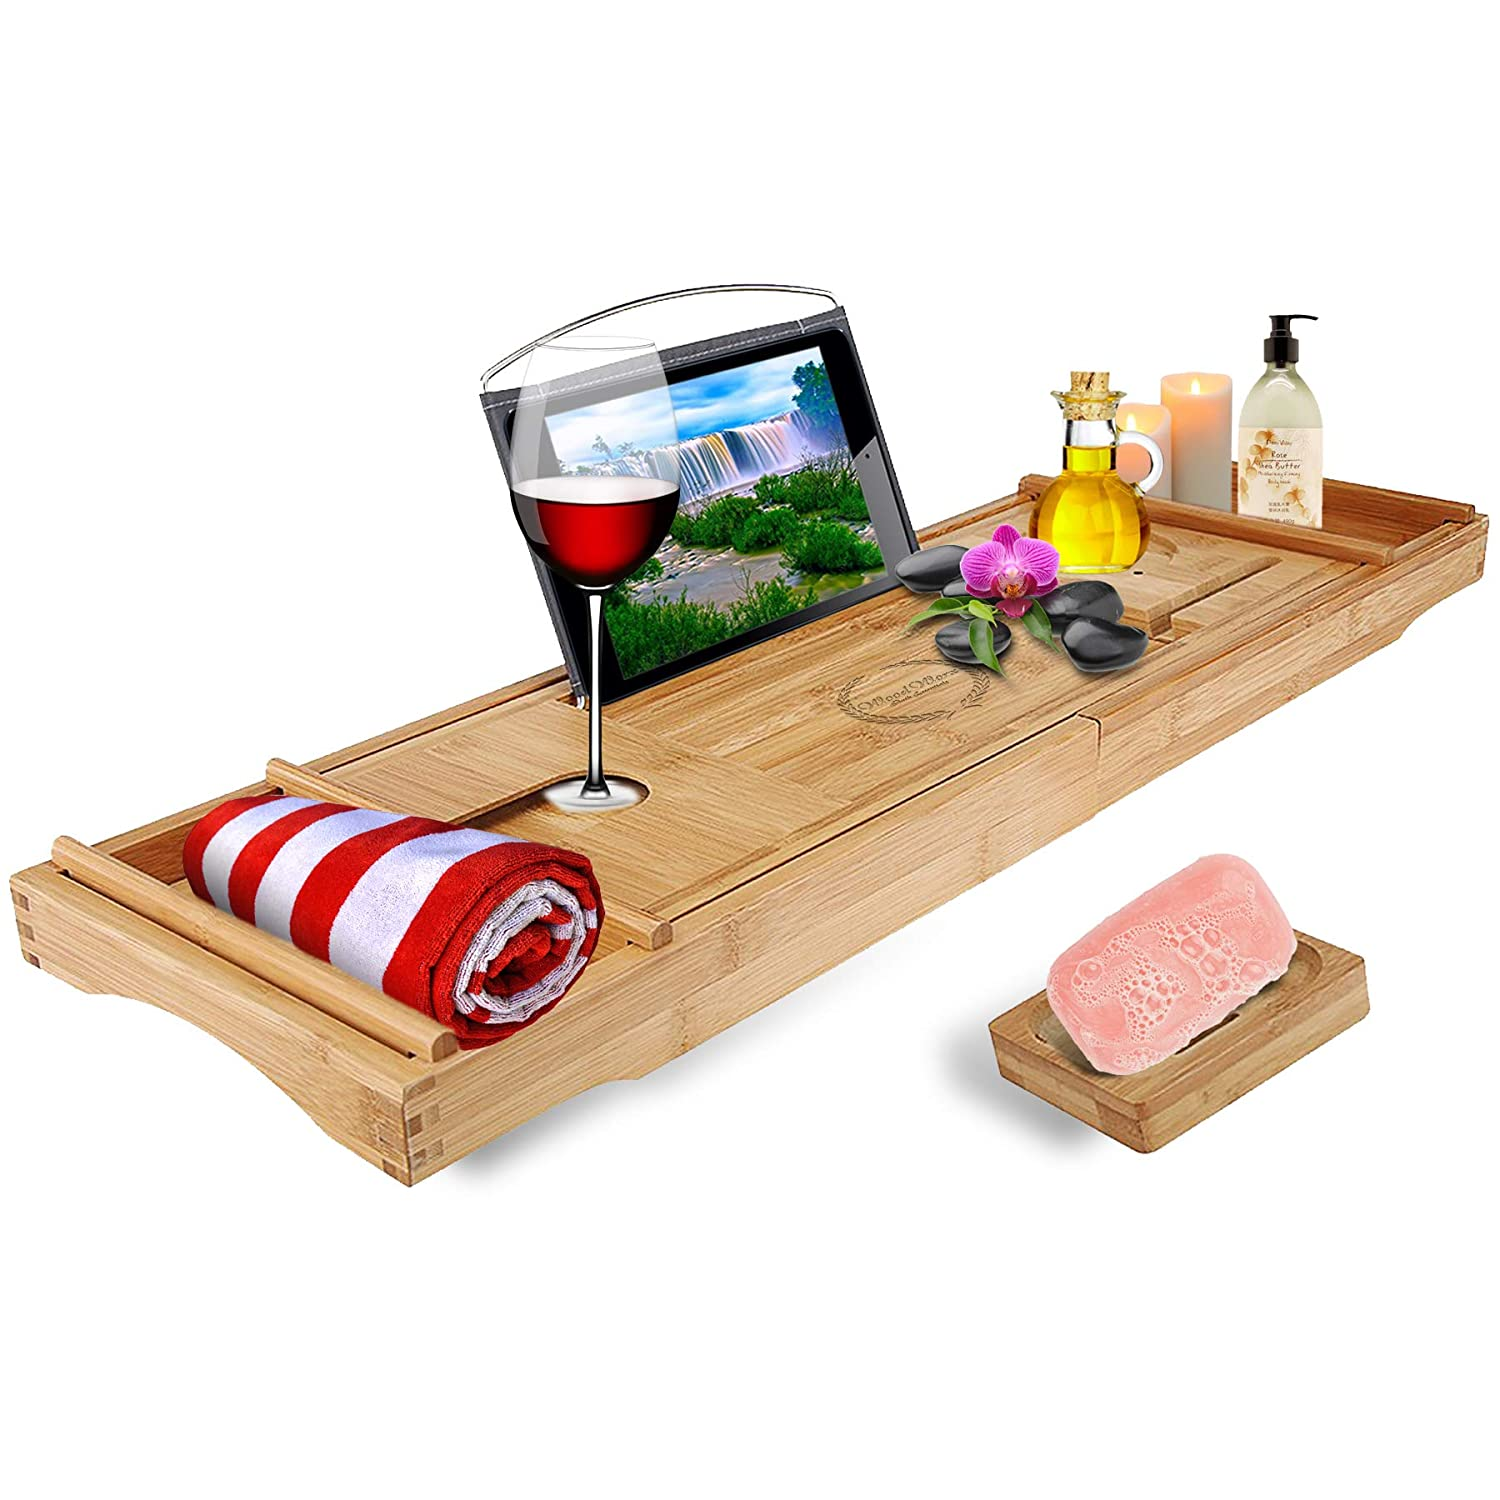 Wood Worx Bath Essentials - Premium Bamboo Bathtub Caddy Shelf & Soap Holder - Nonslip Wooden Tray with Expandable Sides, Book Tablet Holder, 2 Removable Trays, Wine Glass, Smartphone & Candle Slots